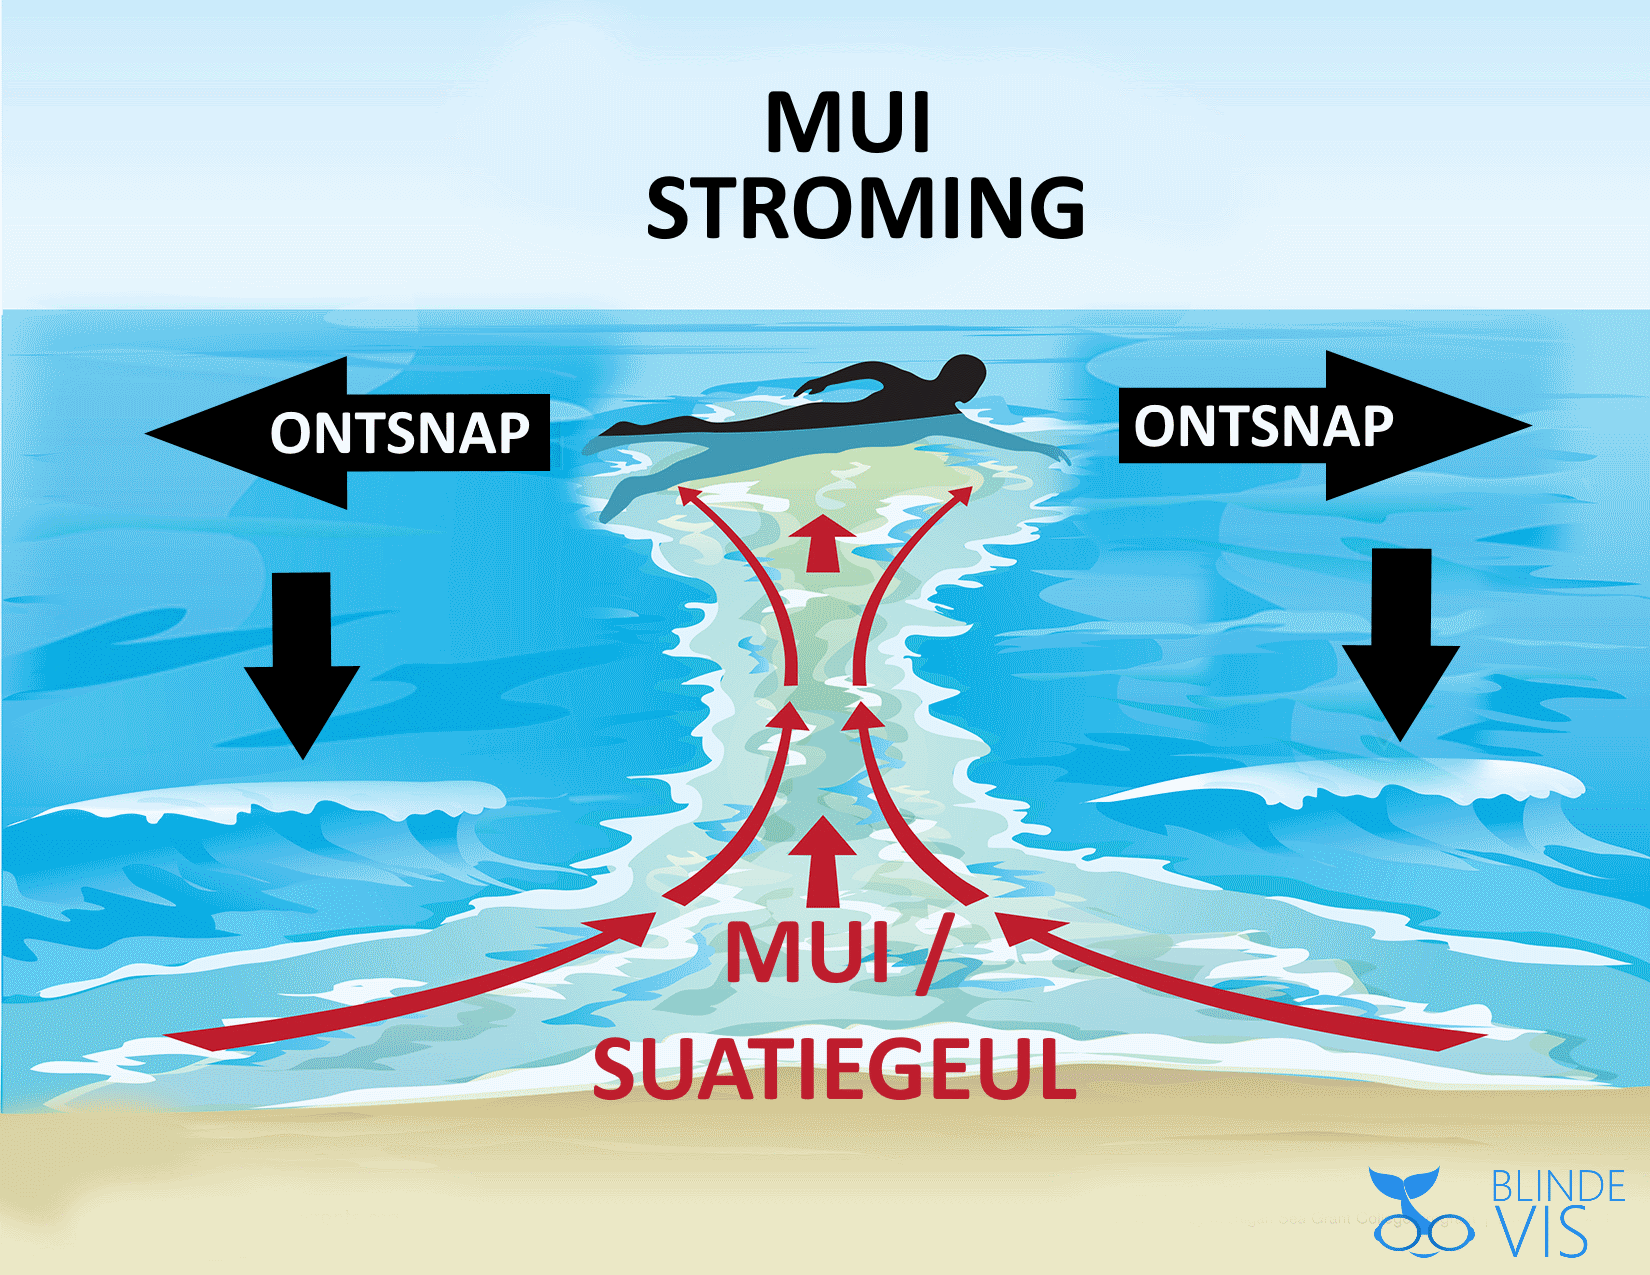 Muistroming in de zee